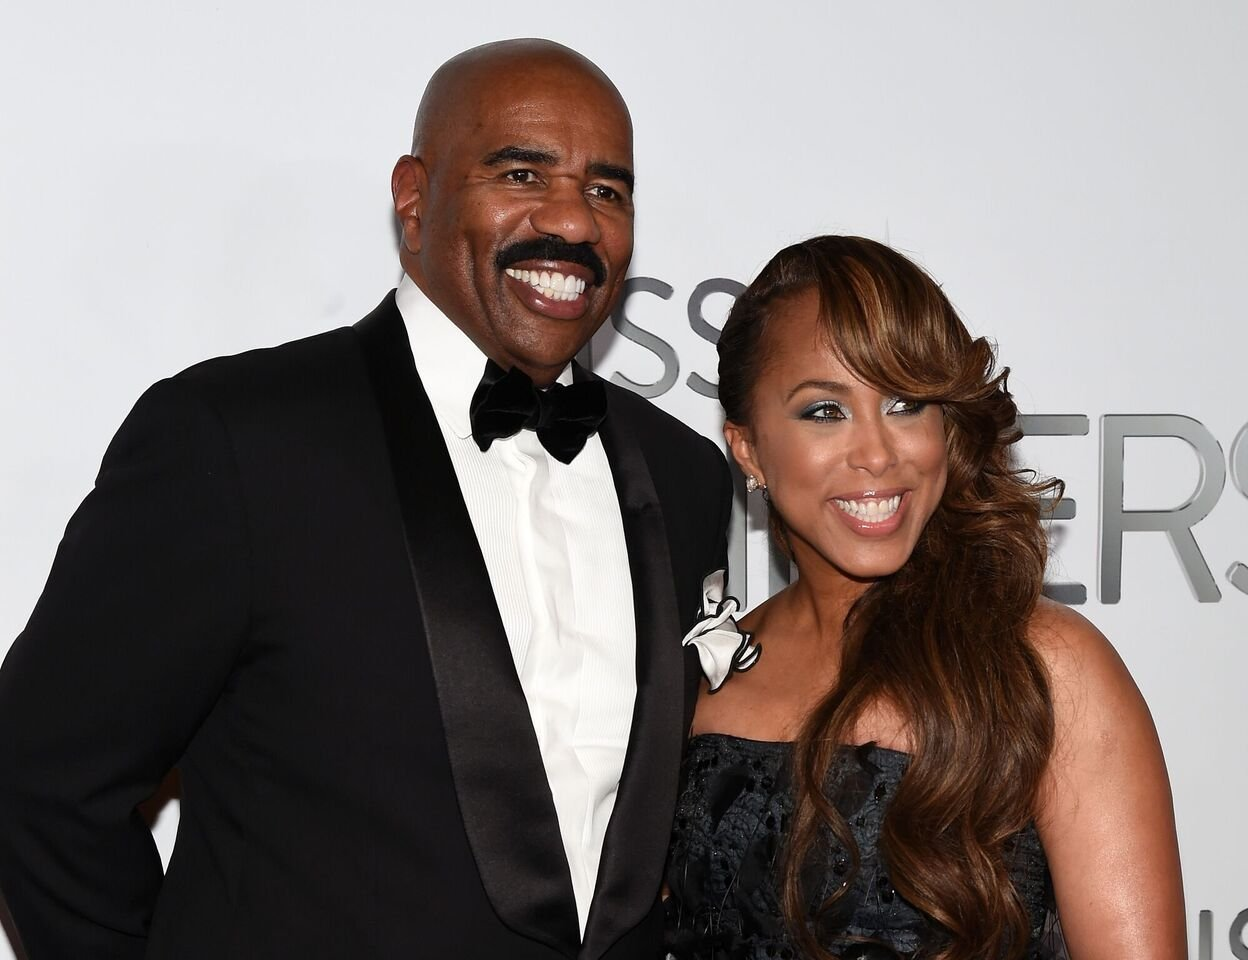 Steve Harvey and his wife Marjorie Harvey attend the 2015 Miss Universe Pageant at Planet Hollywood Resort & Casino on December 20, 2015 in Las Vegas, Nevada. | Source: Getty Images